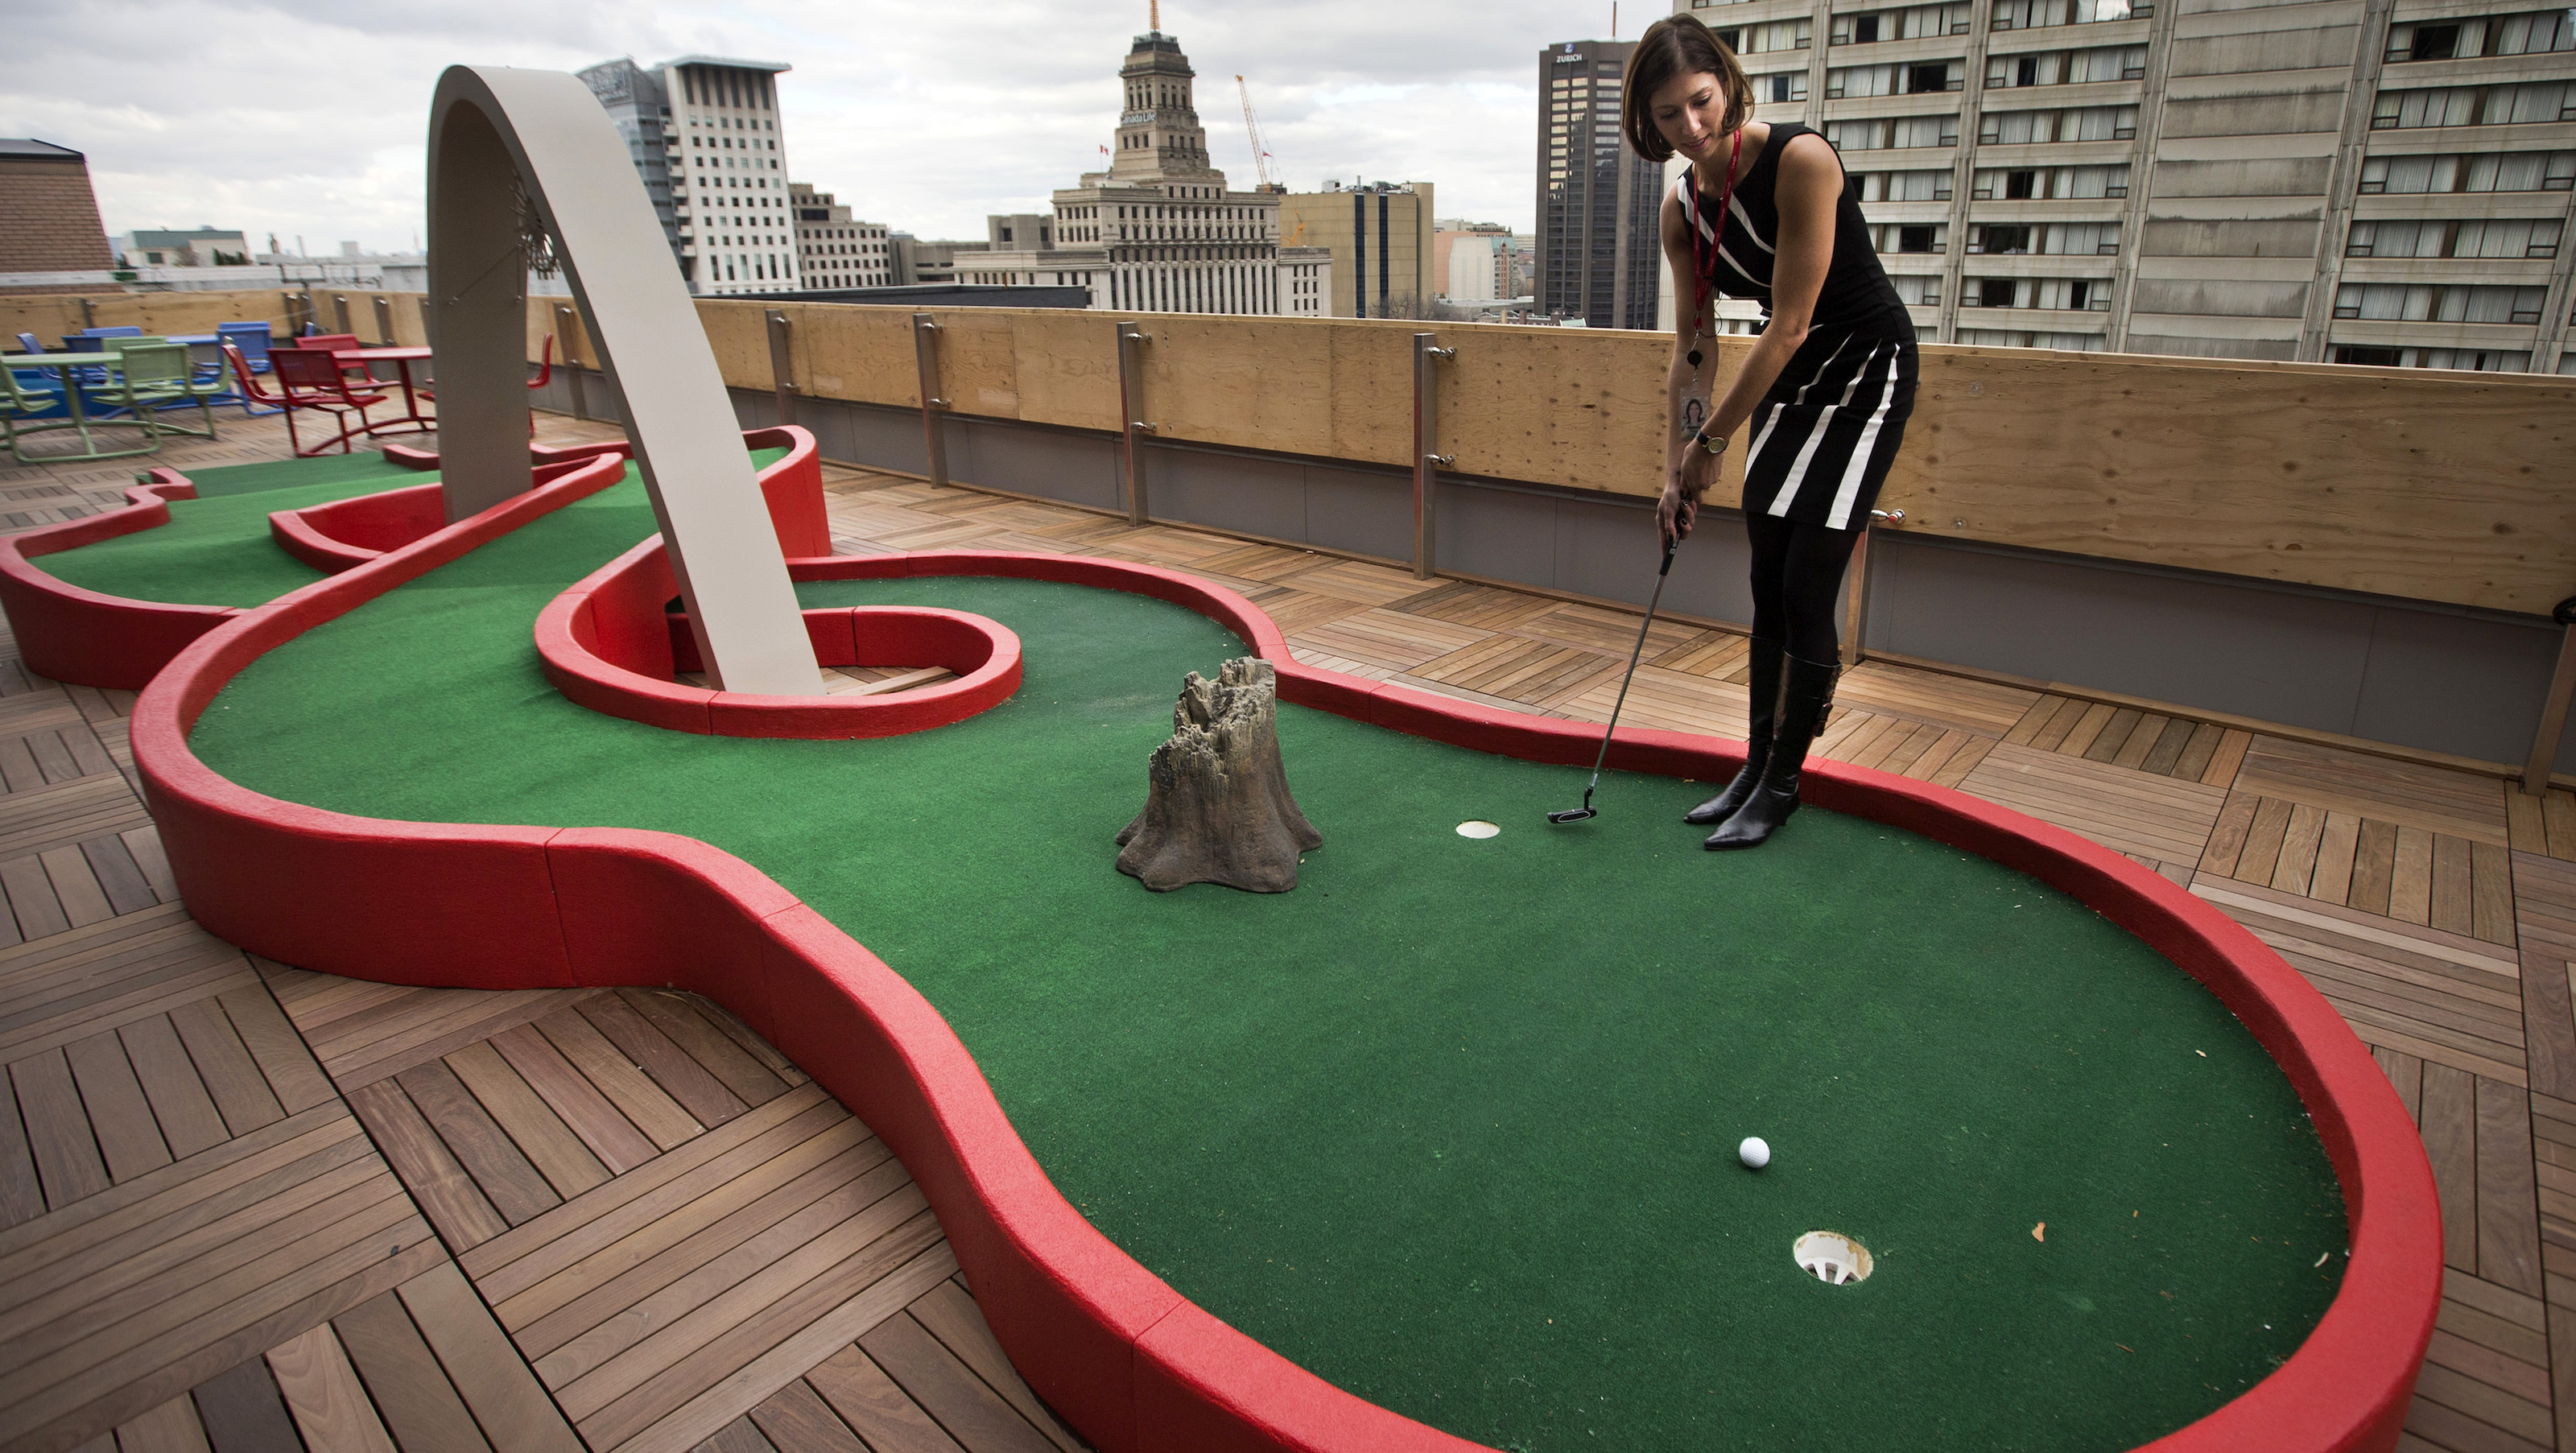 Google employee Andrea Janus demonstrates the use of the mini-putt green on the balcony at the new Google office in Toronto, November 13, 2012.    REUTERS/Mark Blinch (CANADA - Tags: SCIENCE TECHNOLOGY BUSINESS) - RTR3AD00